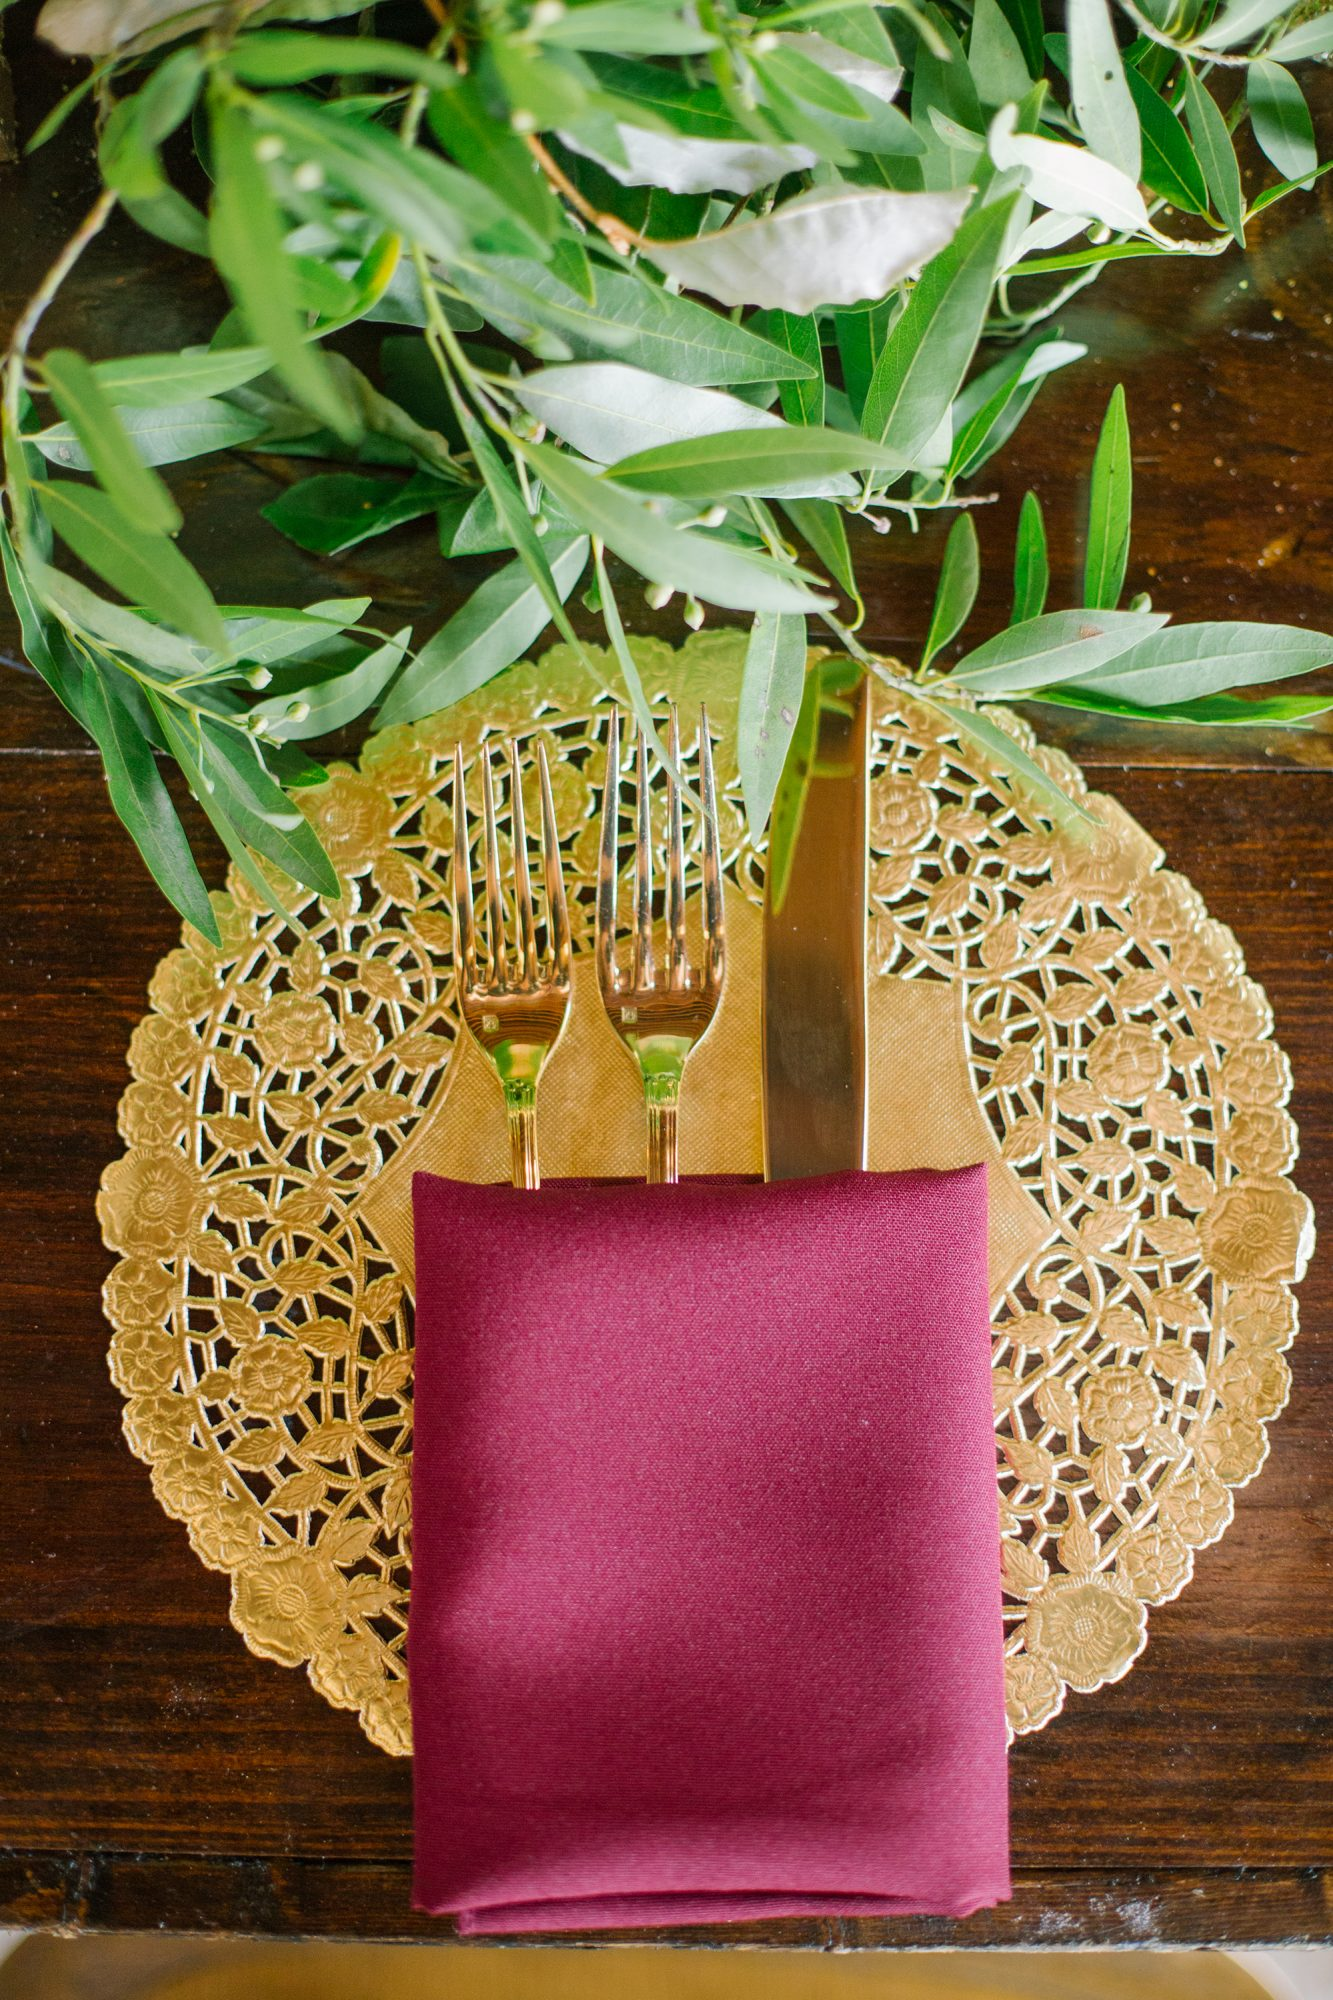 The Fanciful Fall Place Setting